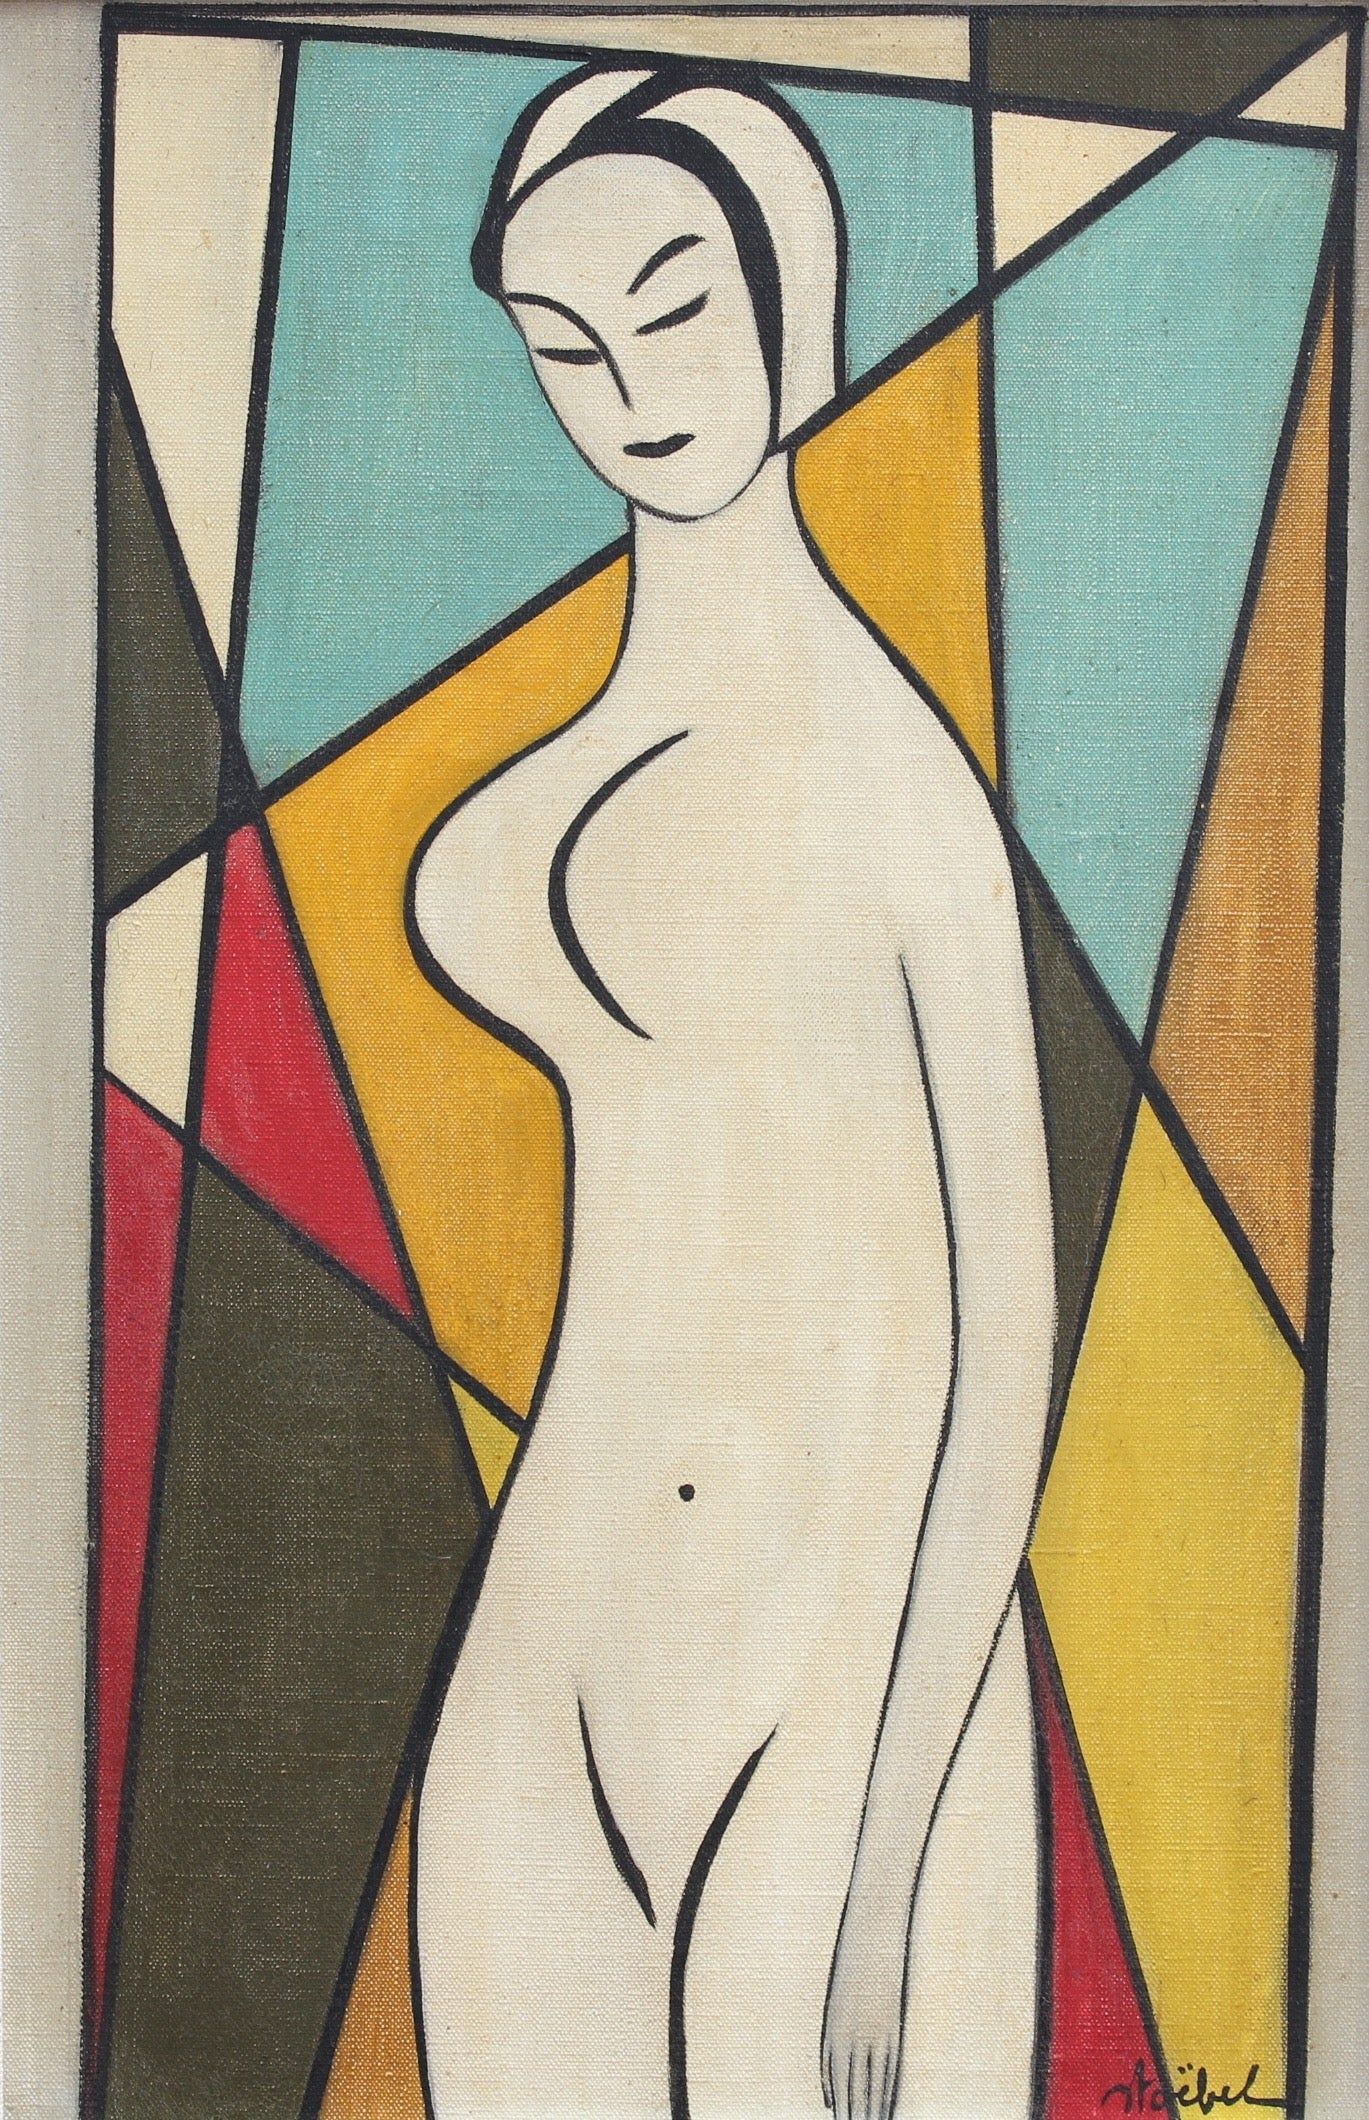 'Standing Nude' by Edgar Stoëbel (circa 1960s)